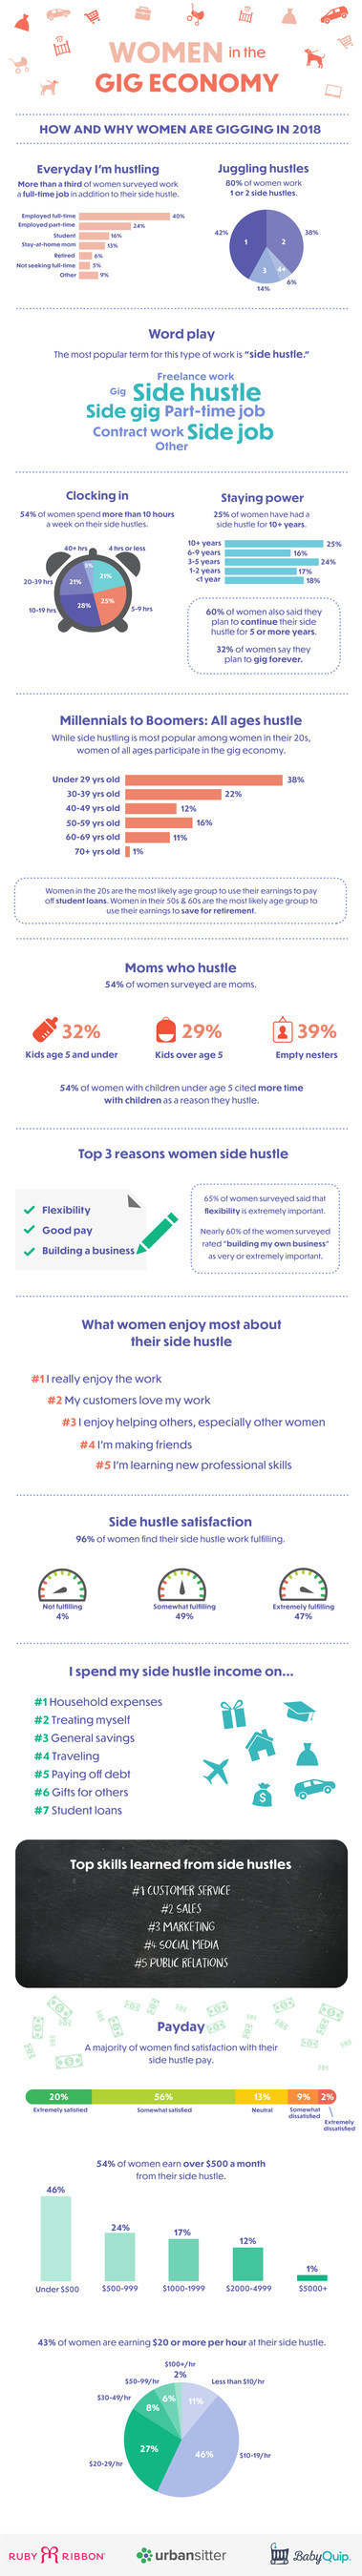 The survey or more than 1,000 women with a side hustle showed the top three reasons women gig were flexibility, income, and entrepreneurship.